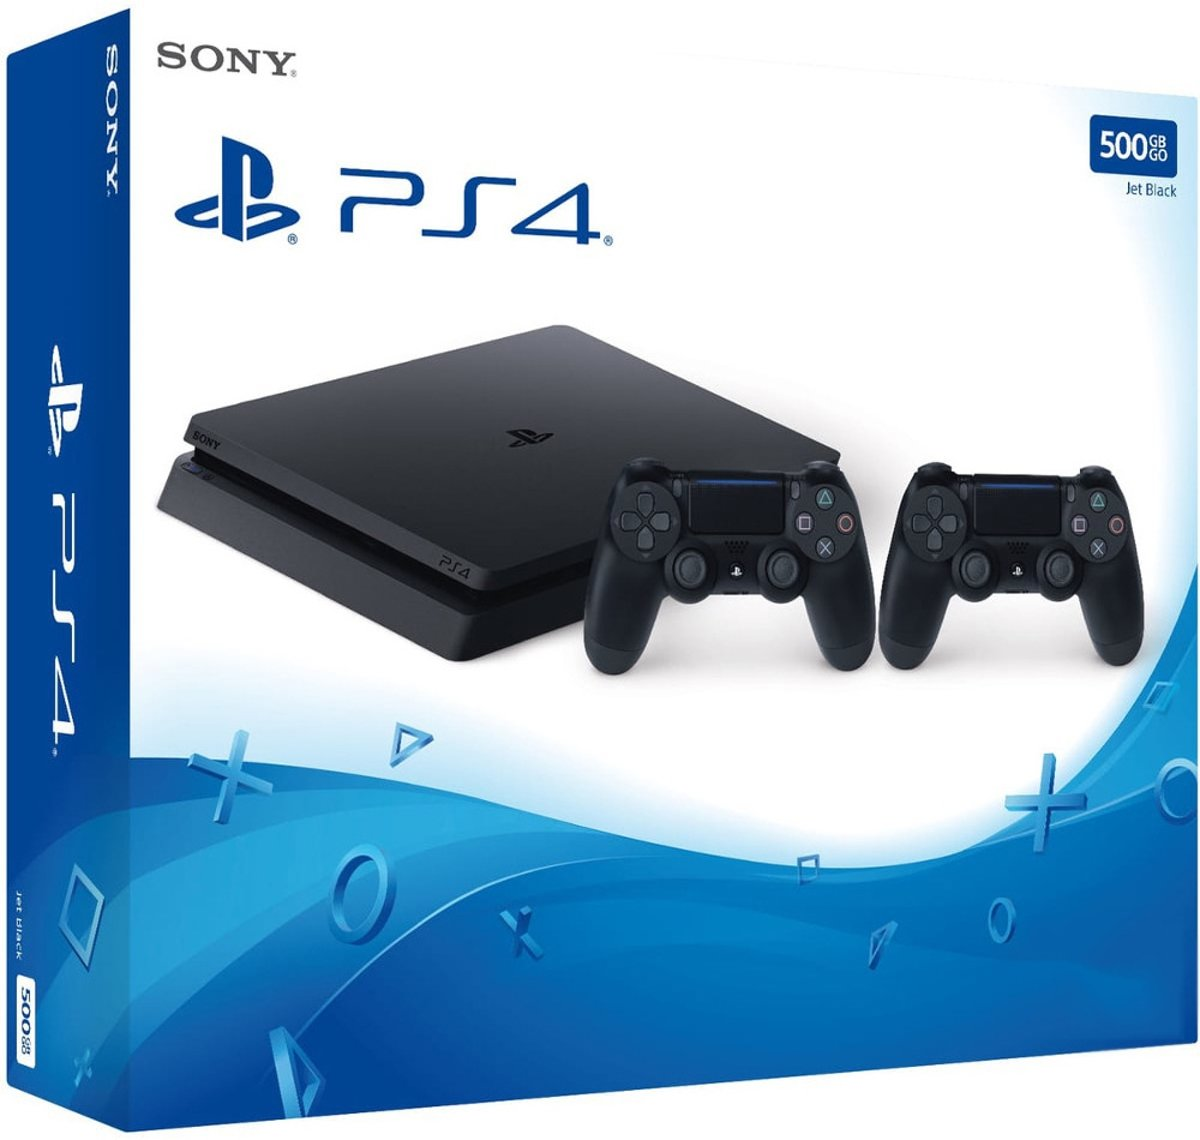 Sony PlayStation 4 Slim Console 500GB + 2 Wireless Dualshock 4 Controller V2 - Zwart PS4 (Import)